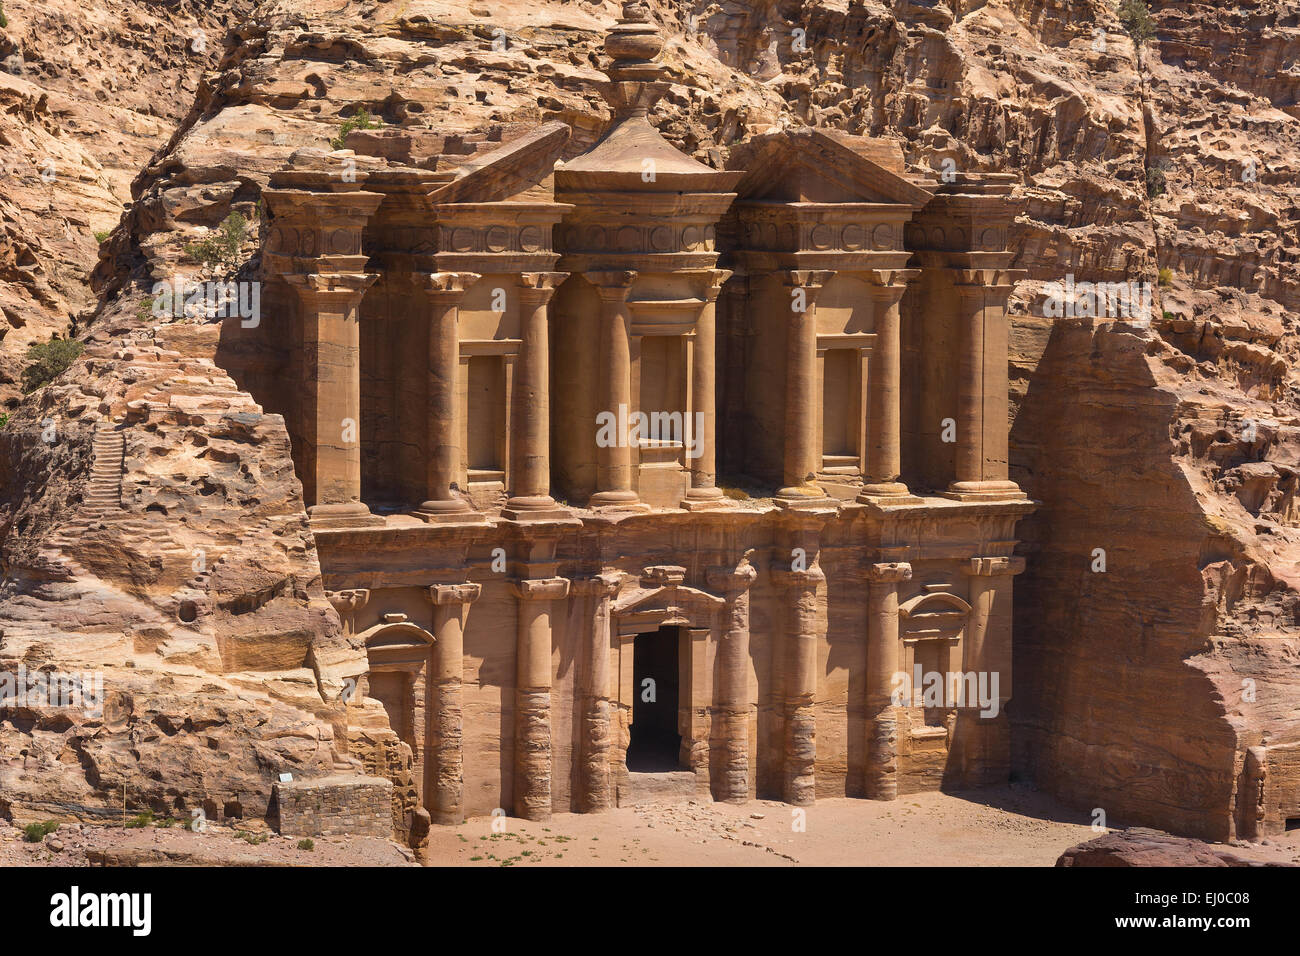 The al-Dayr tomb part of the Petra complex in Jordan  Similar to the famous Treasury carved building. - Stock Image